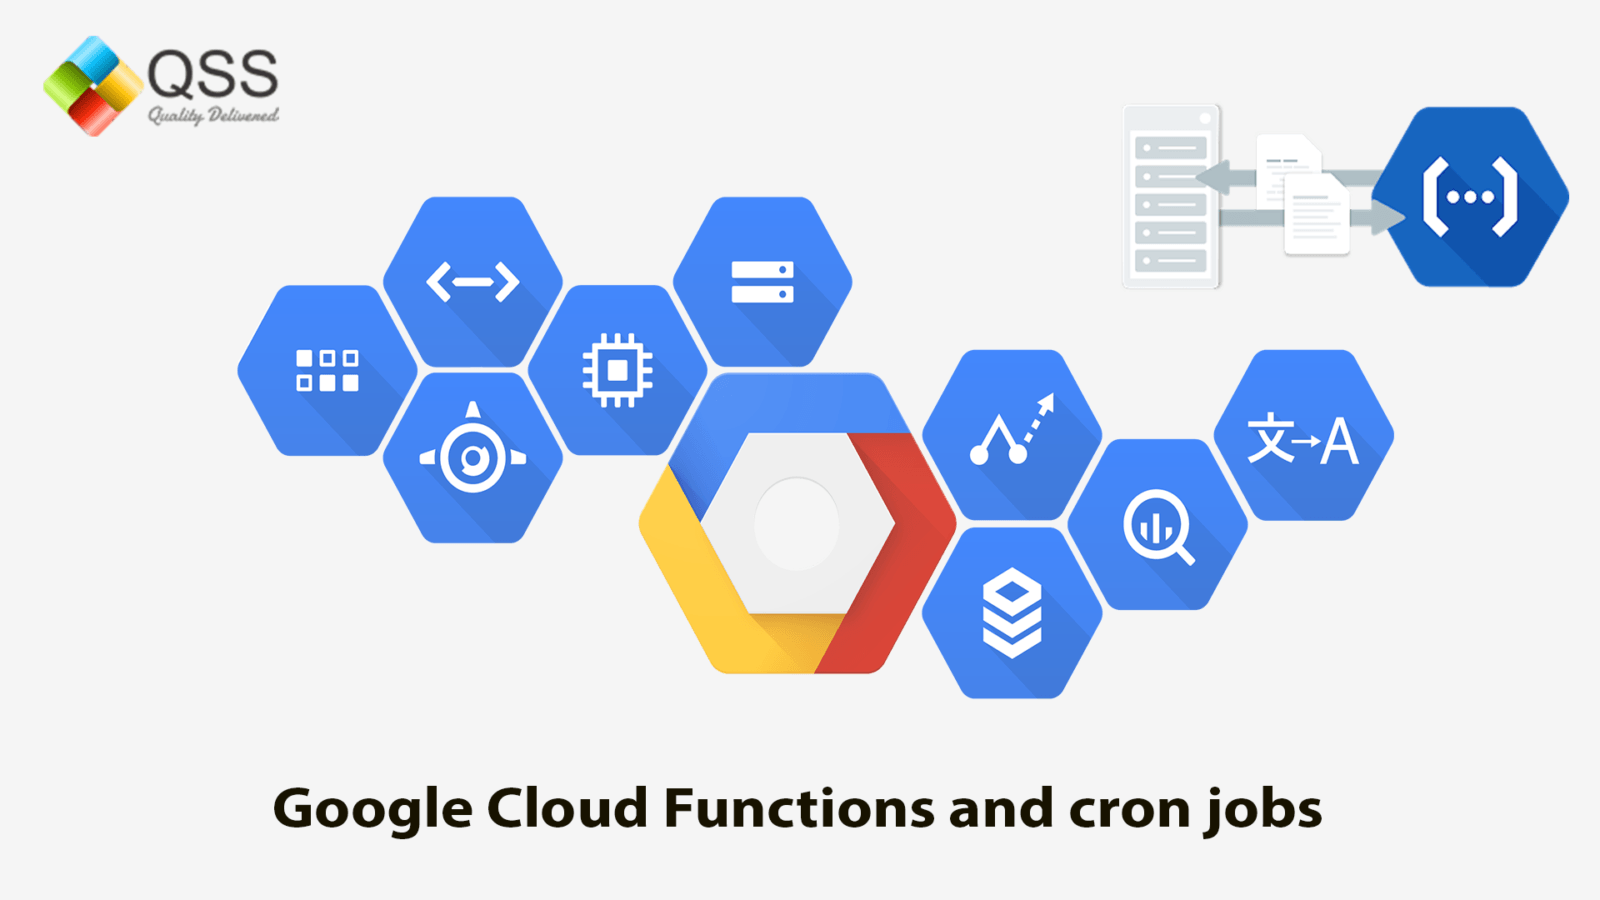 How to Schedule Cron Jobs with Google Cloud Functions?